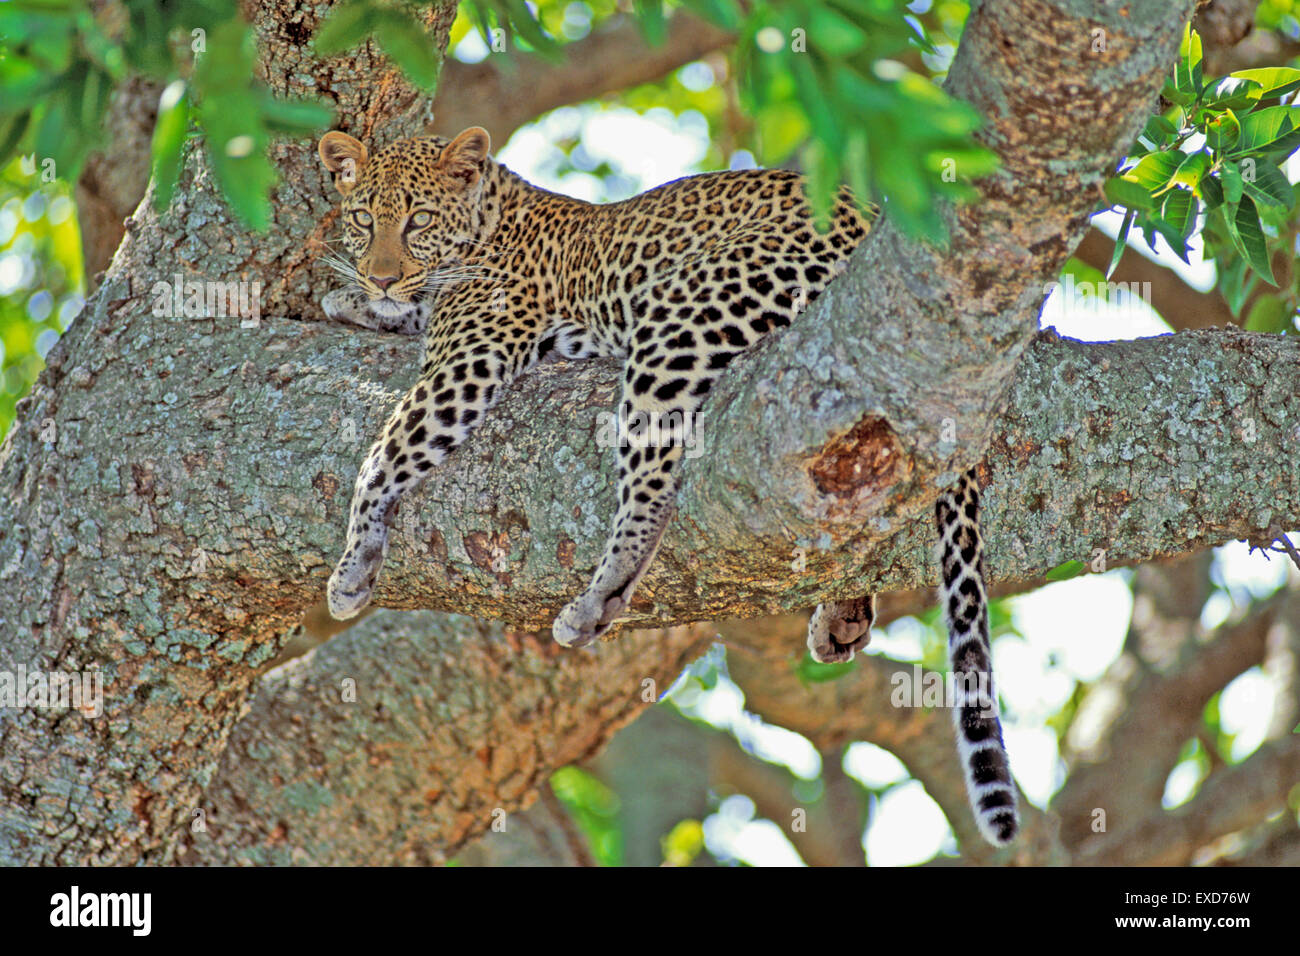 African Leopard resting in tree, watching - Stock Image